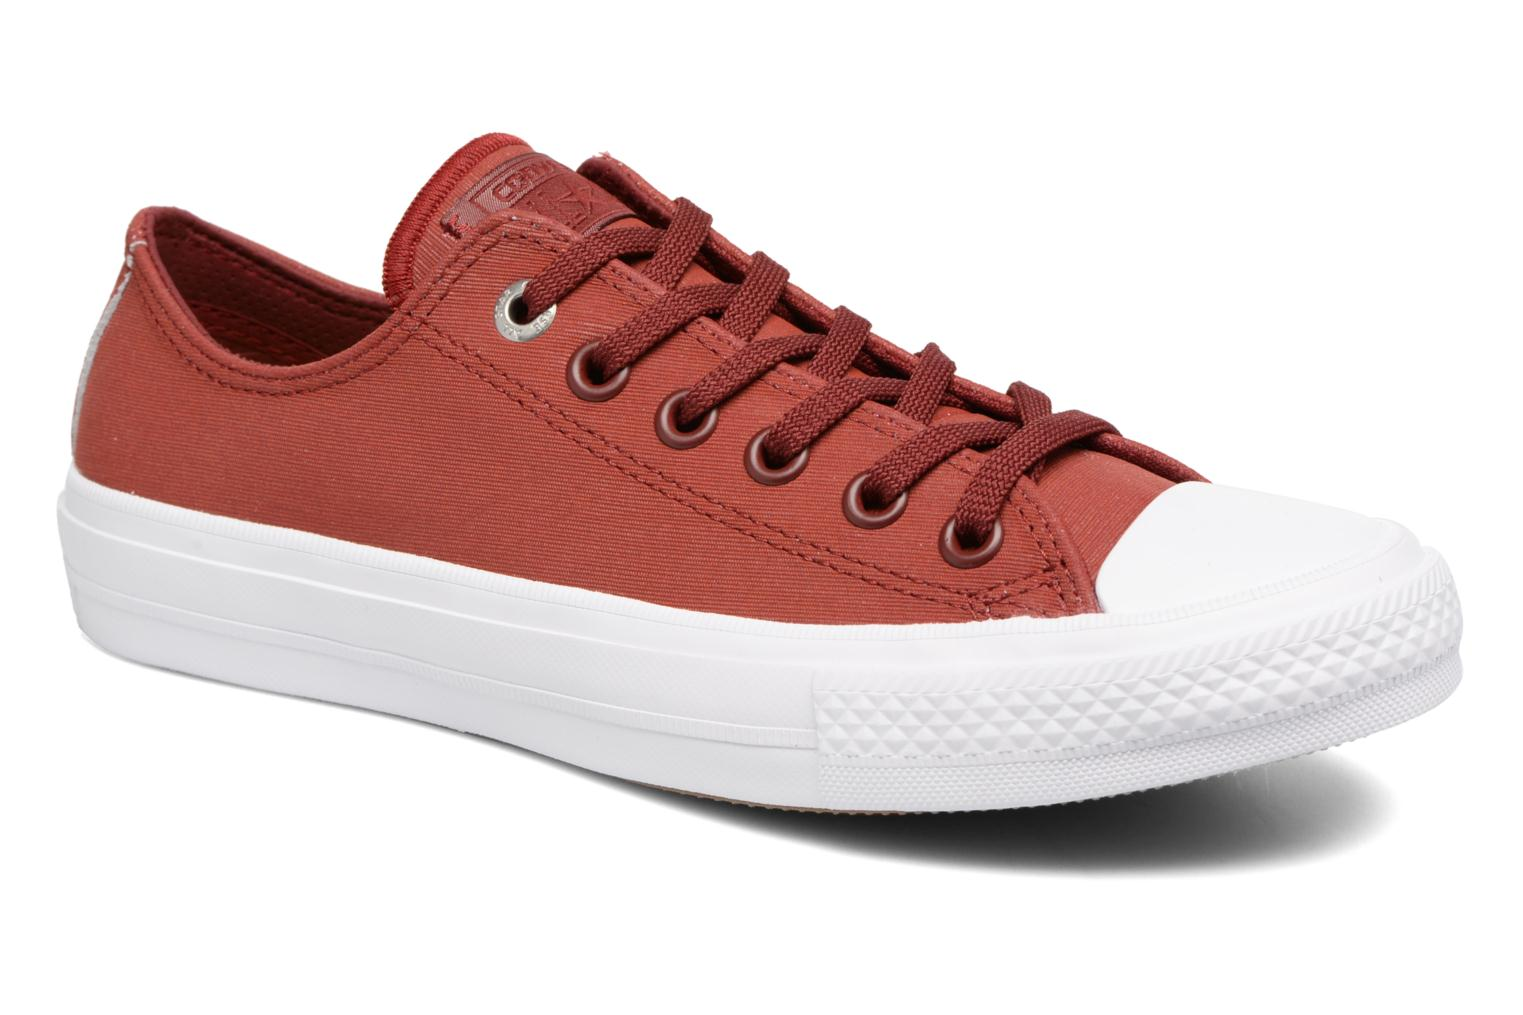 Chuck II Two-Tone Leather Ox W Red Block/Signal Red/White